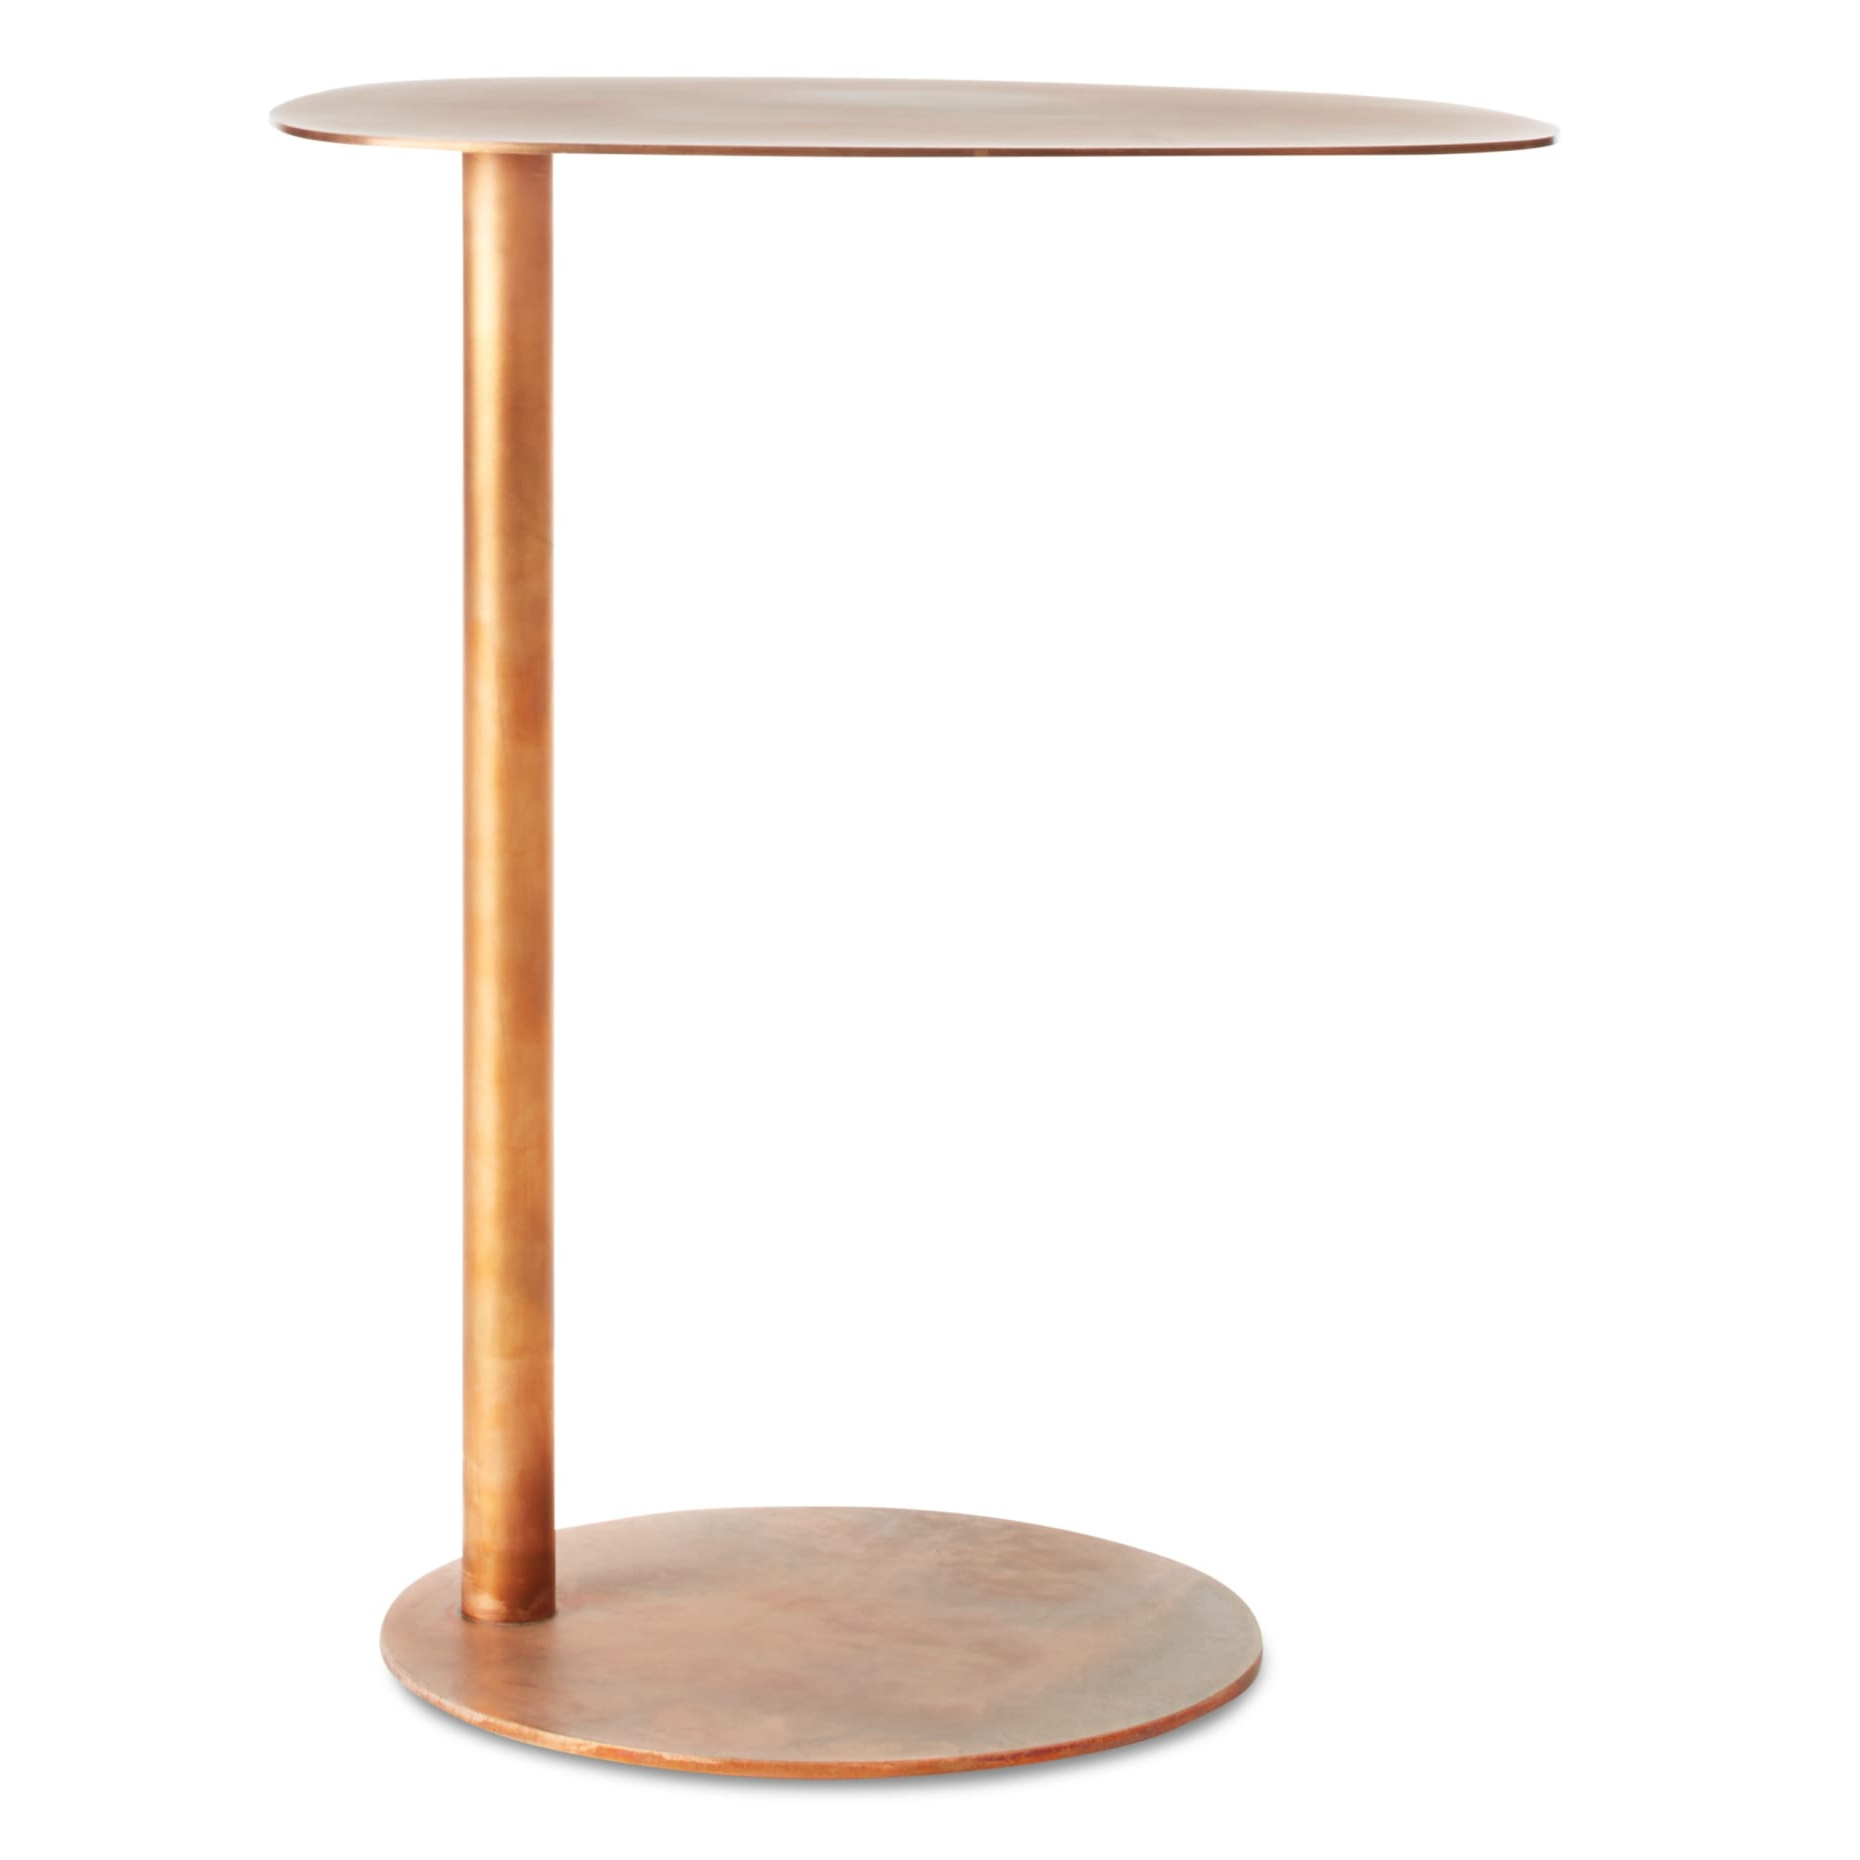 Blu Dot with regard to Recent Black Top  Large Dining Tables With Metal Base Copper Finish